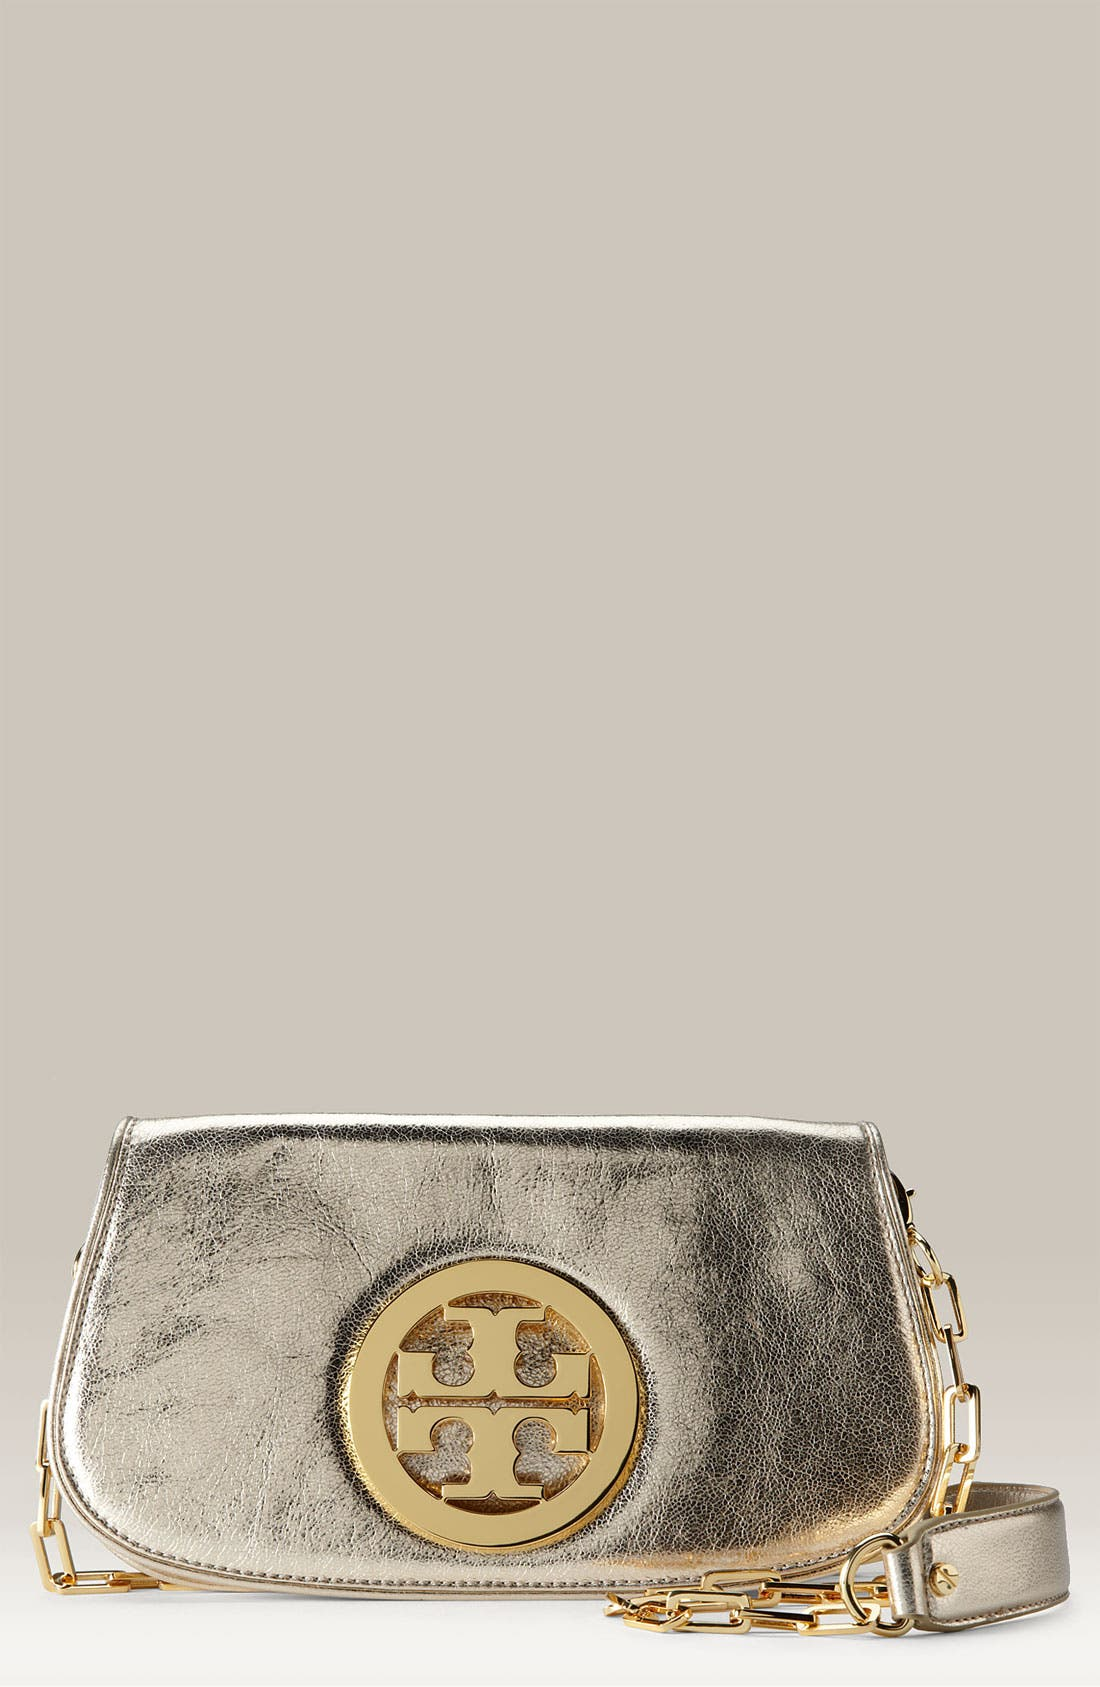 Main Image - Tory Burch Logo Flap Clutch